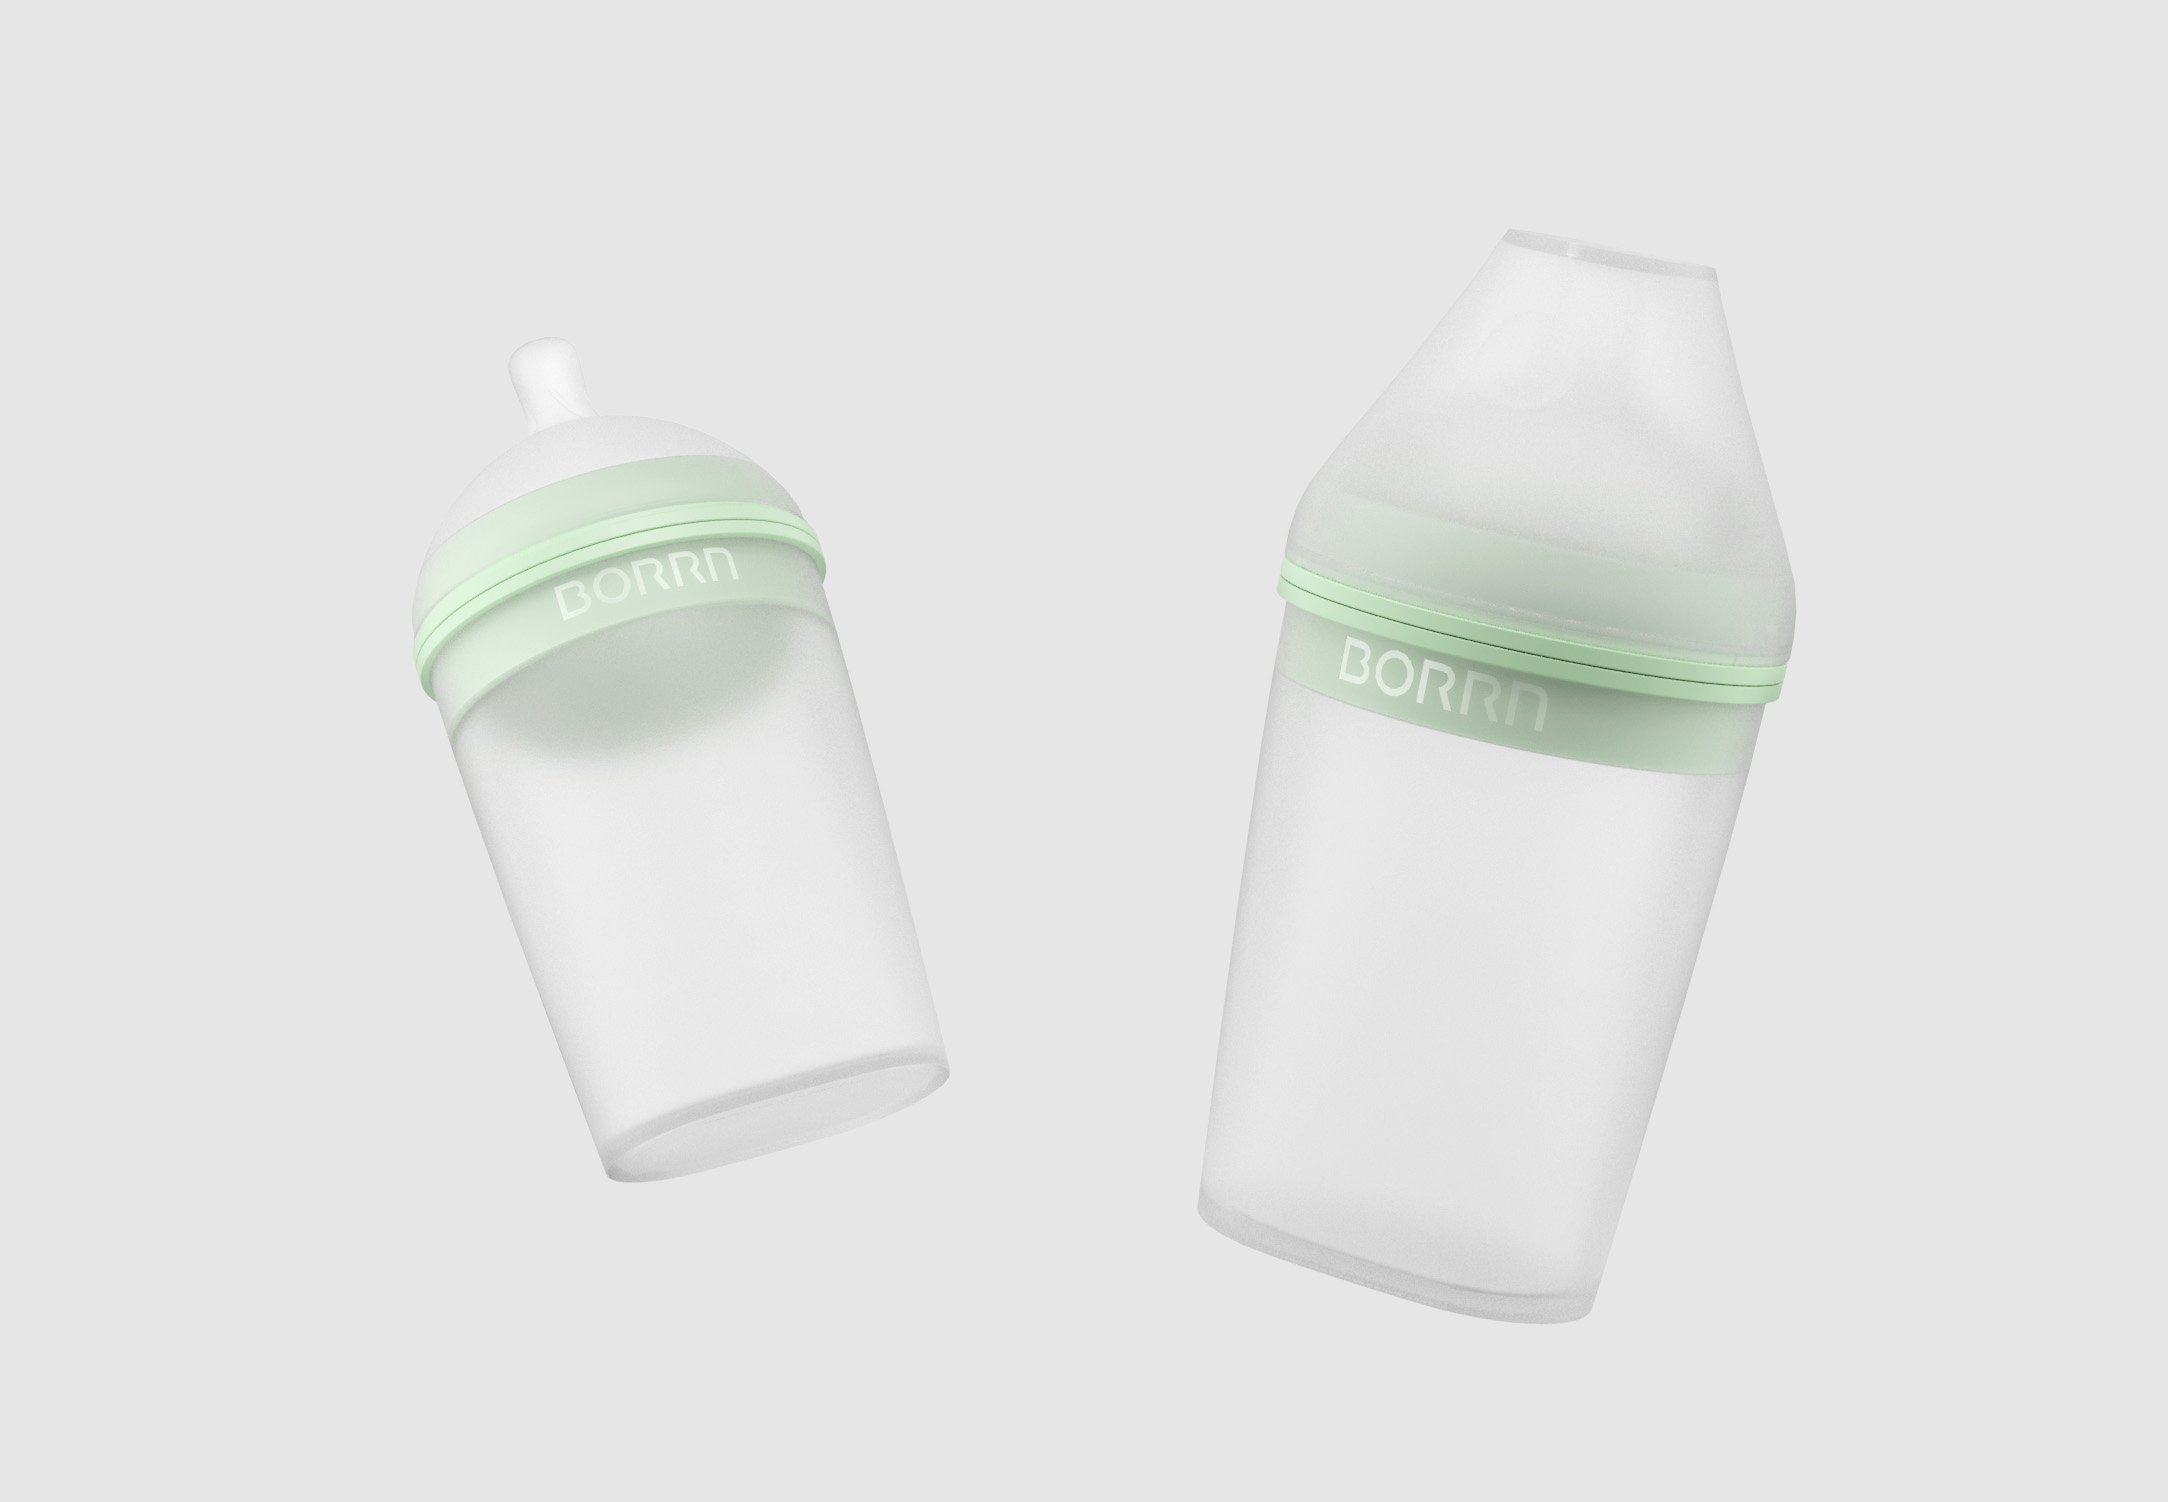 BORRN's soft and squishy silicon bottles